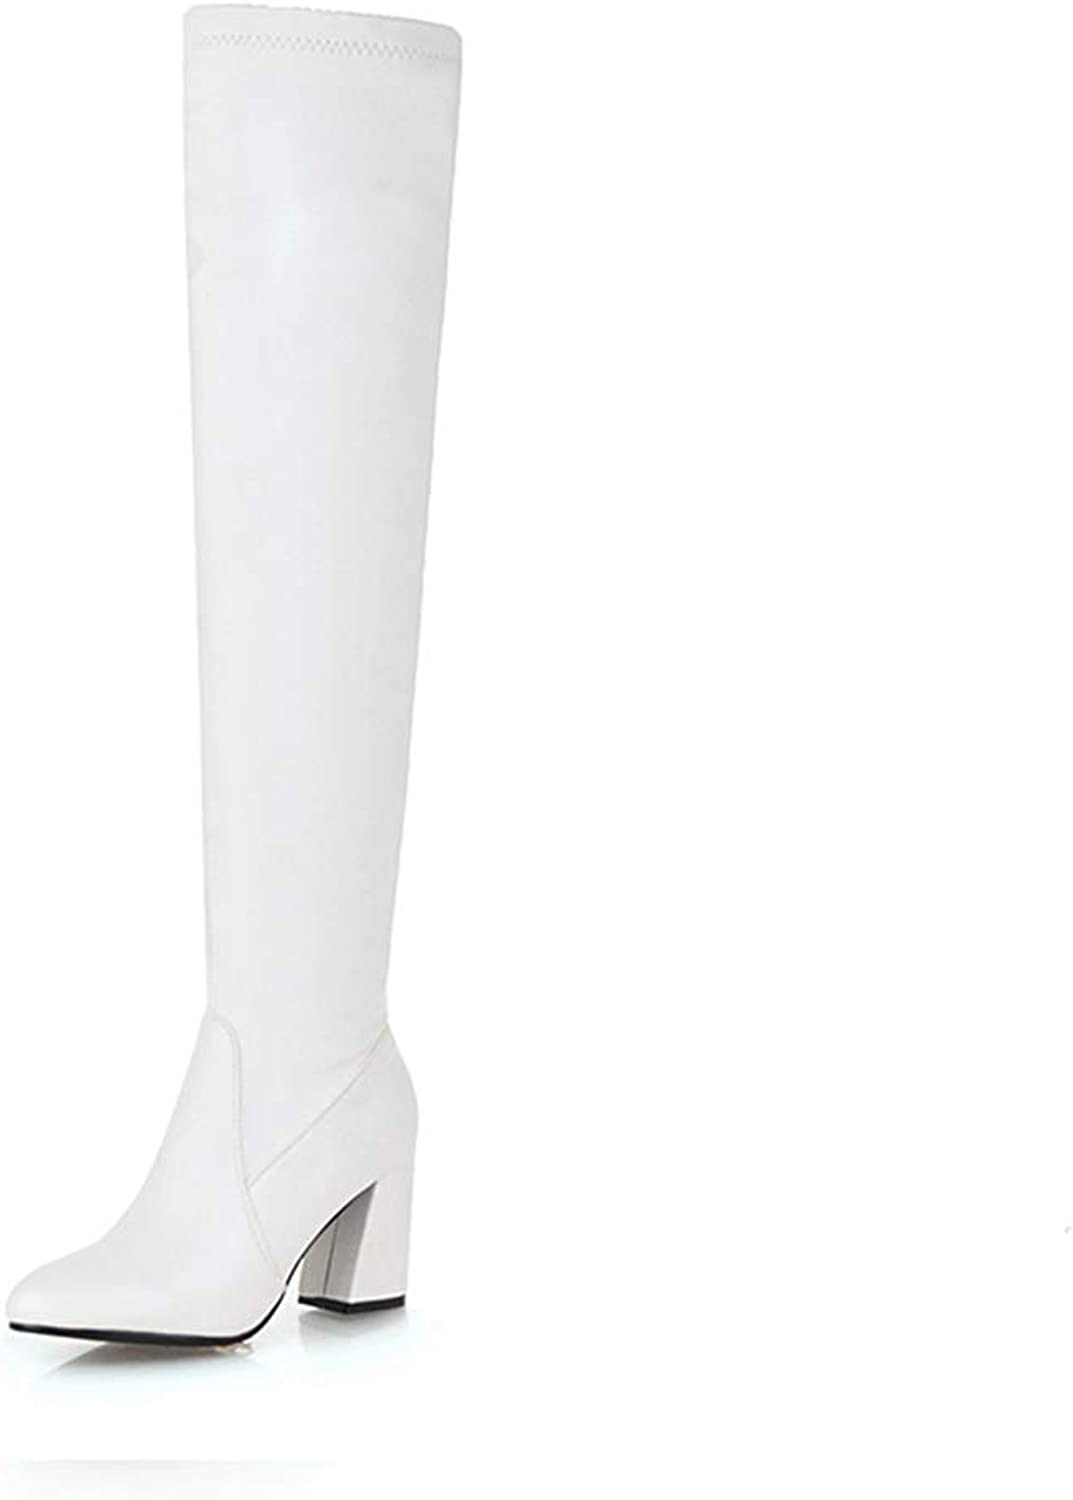 Women Over The Knee Boots Thick High Heels Pointed Toe Slip On Plush Warm Winter Sexy Cool Riding Long Boots